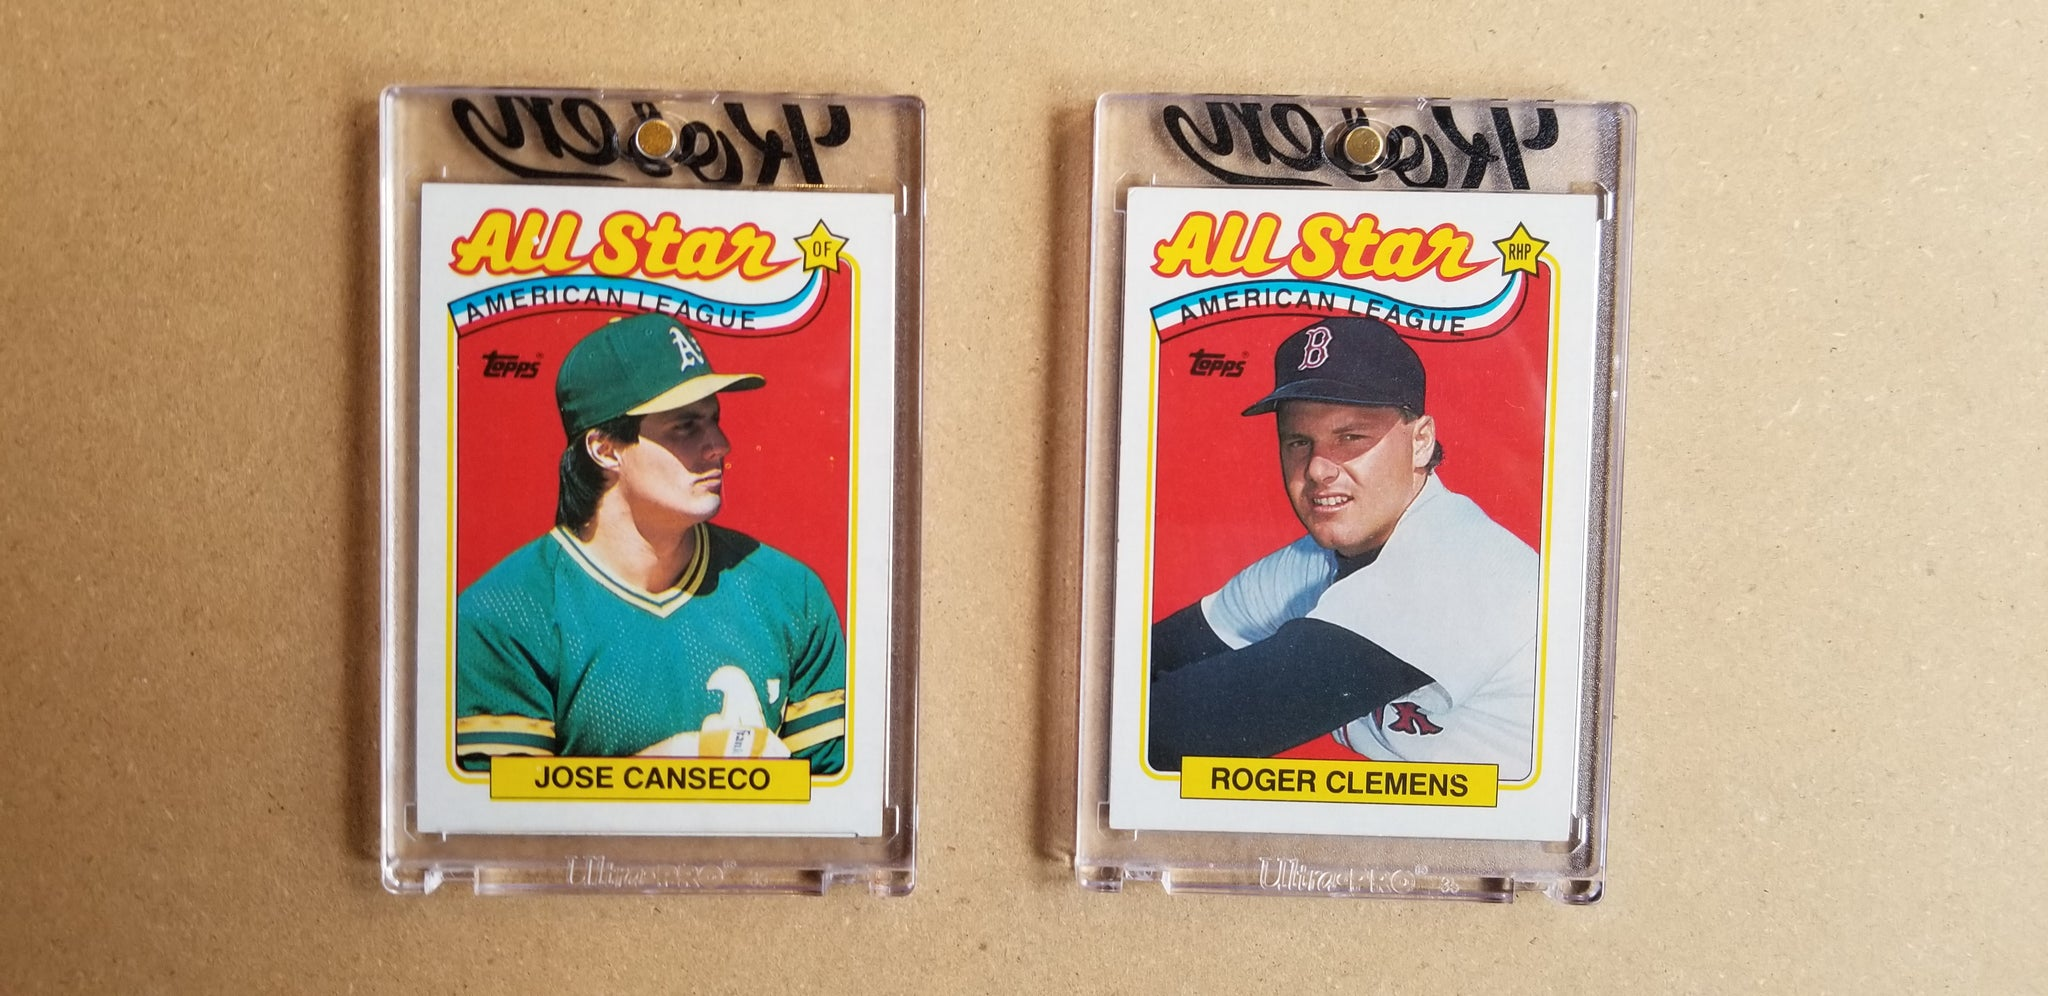 Baseball card art by Matthew Lee Rosen (aka Matthew Rosen) - Gum Stick Collector Cards - 1989 Topps (All Stars)